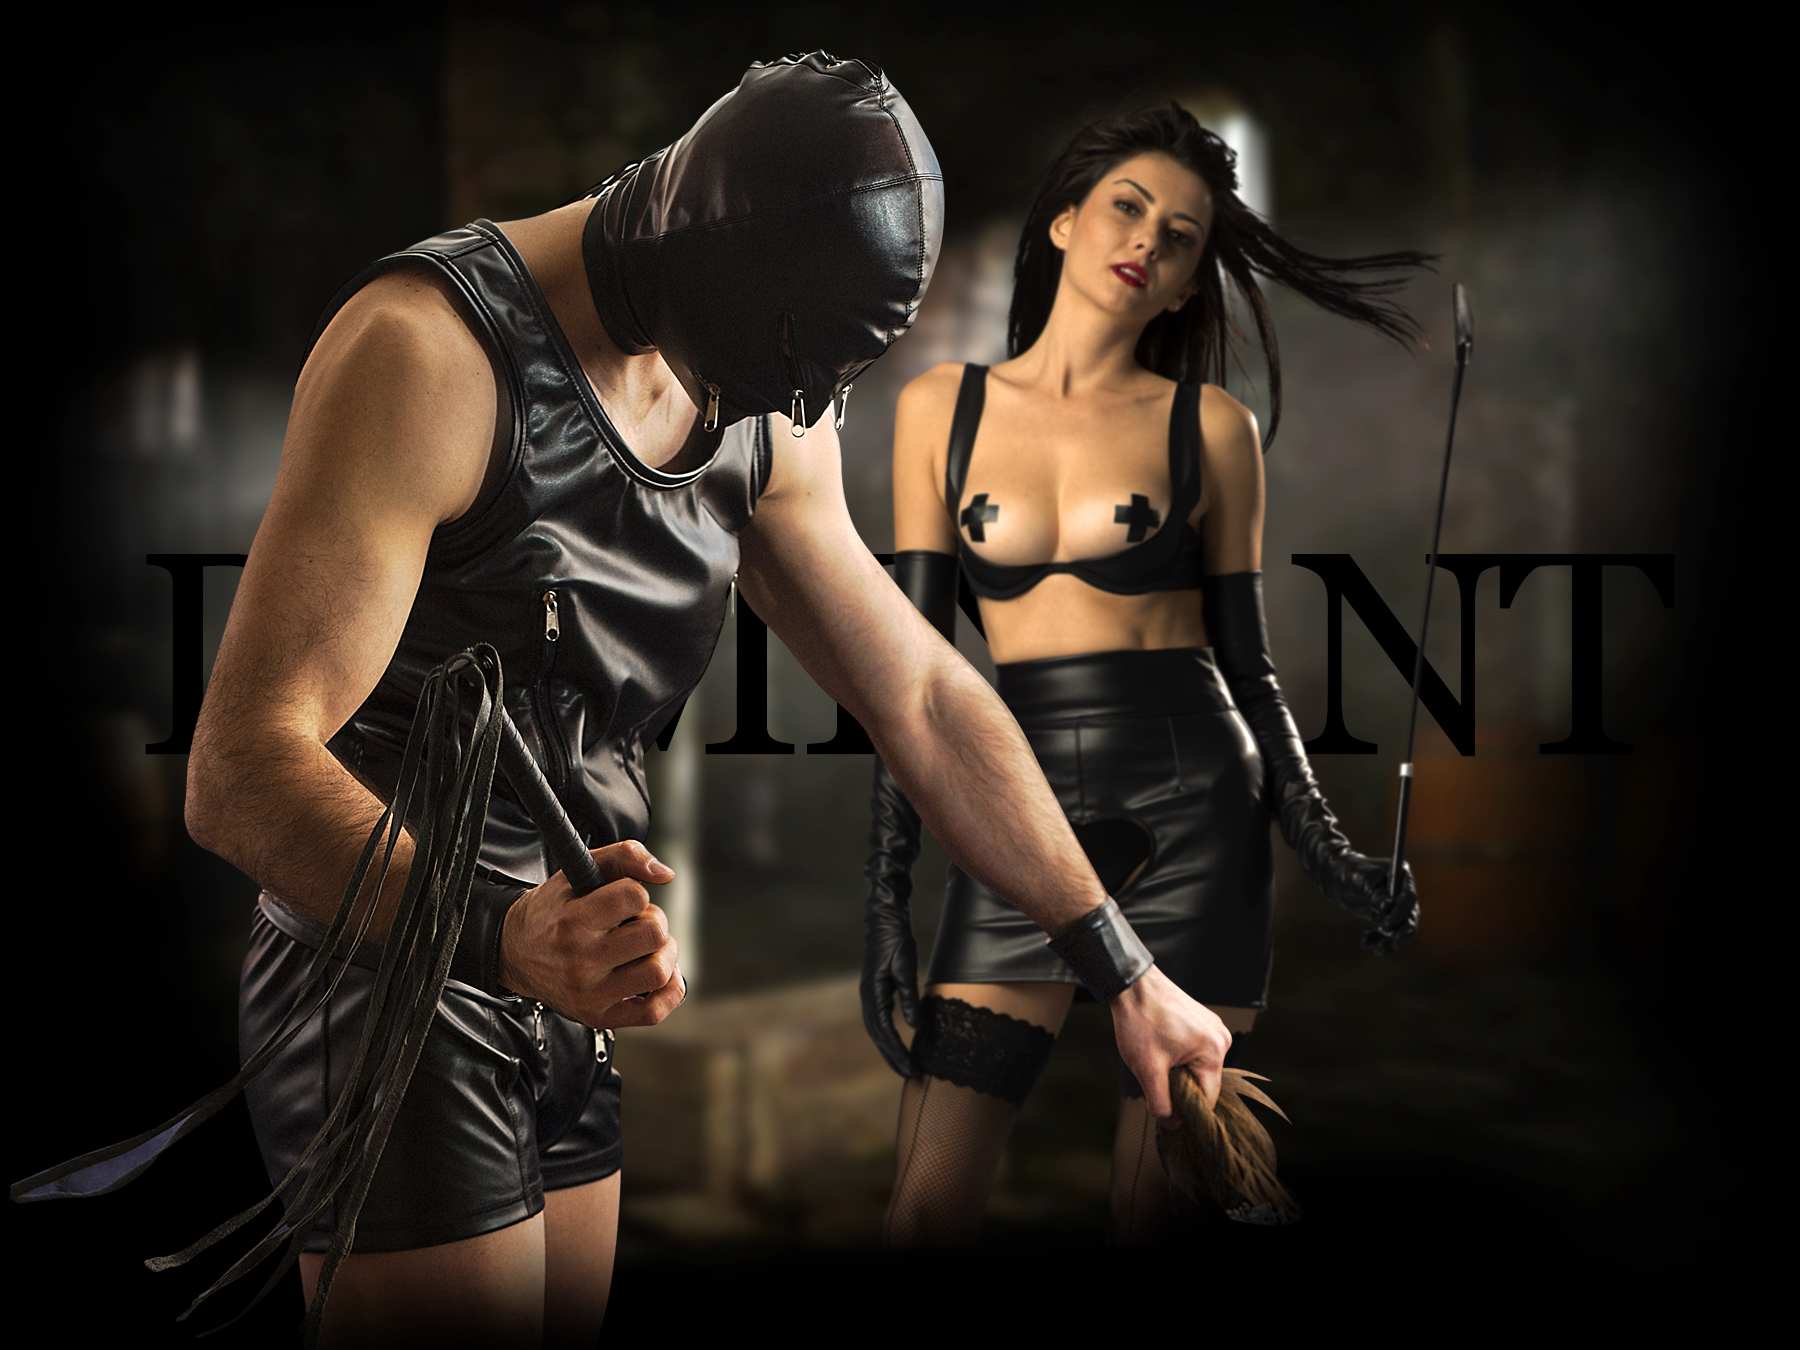 bdsm, espressivoclub, espressivo club, fetish, bondage, bondage-gear, bdsm shop, domination, dominant gift, bdsm store, fetish store, bdsm bondage, master, mistress, dominatrix, dominatrix clothing, dominatrix gift, bdsm hood, bdsm mask, leather hood, leather mask, leather bondage hood, leather bondage mask, bondage mask, bondage hood